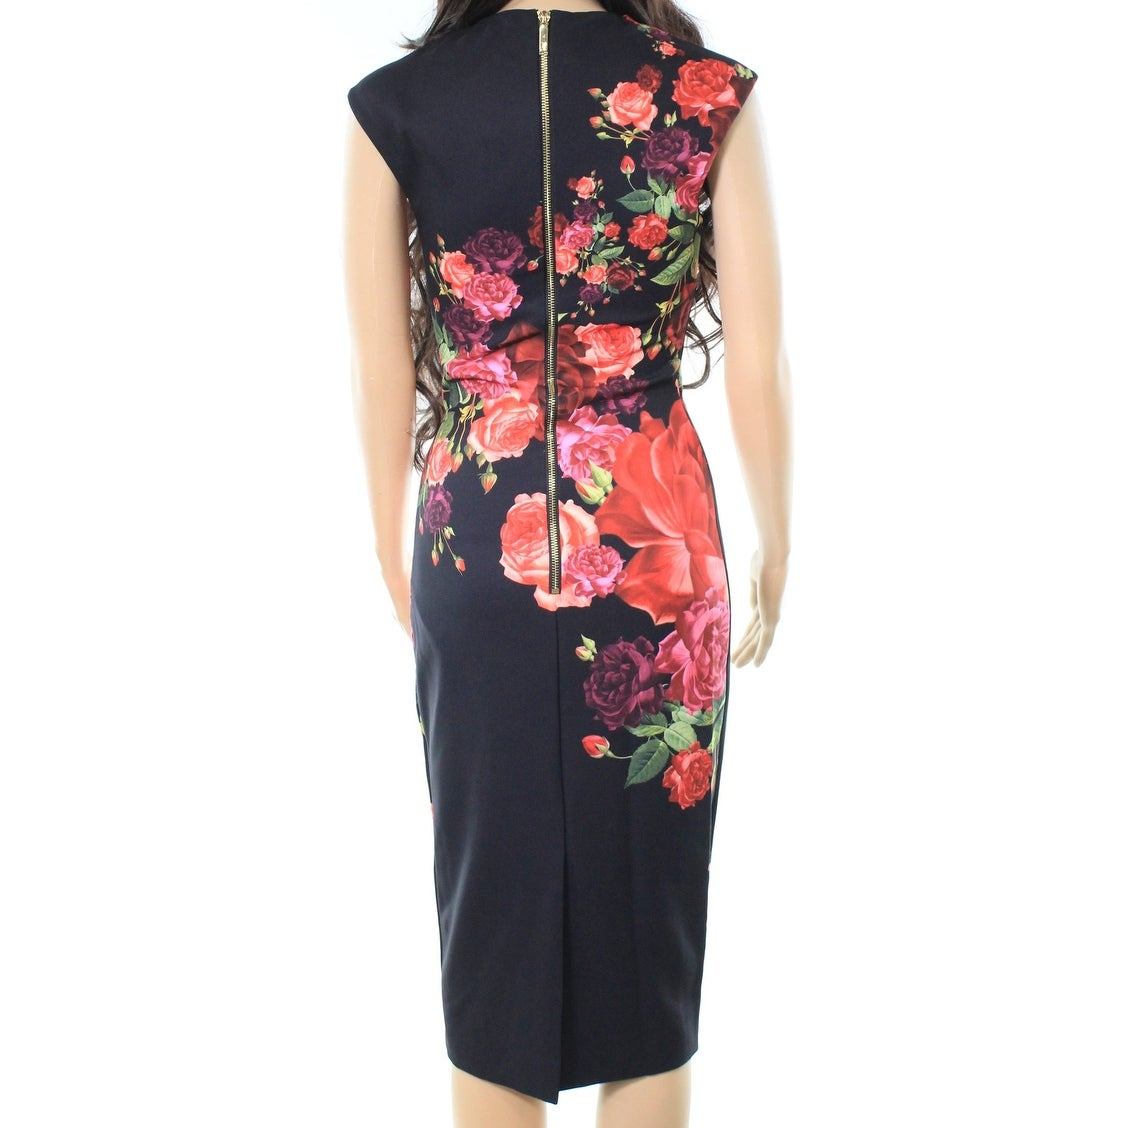 cdfcb5e89b64c Shop Ted Baker NEW Black Women Size 0 US 2 Juxtapose Rose Print Midi Dress  - Free Shipping Today - Overstock - 20269470